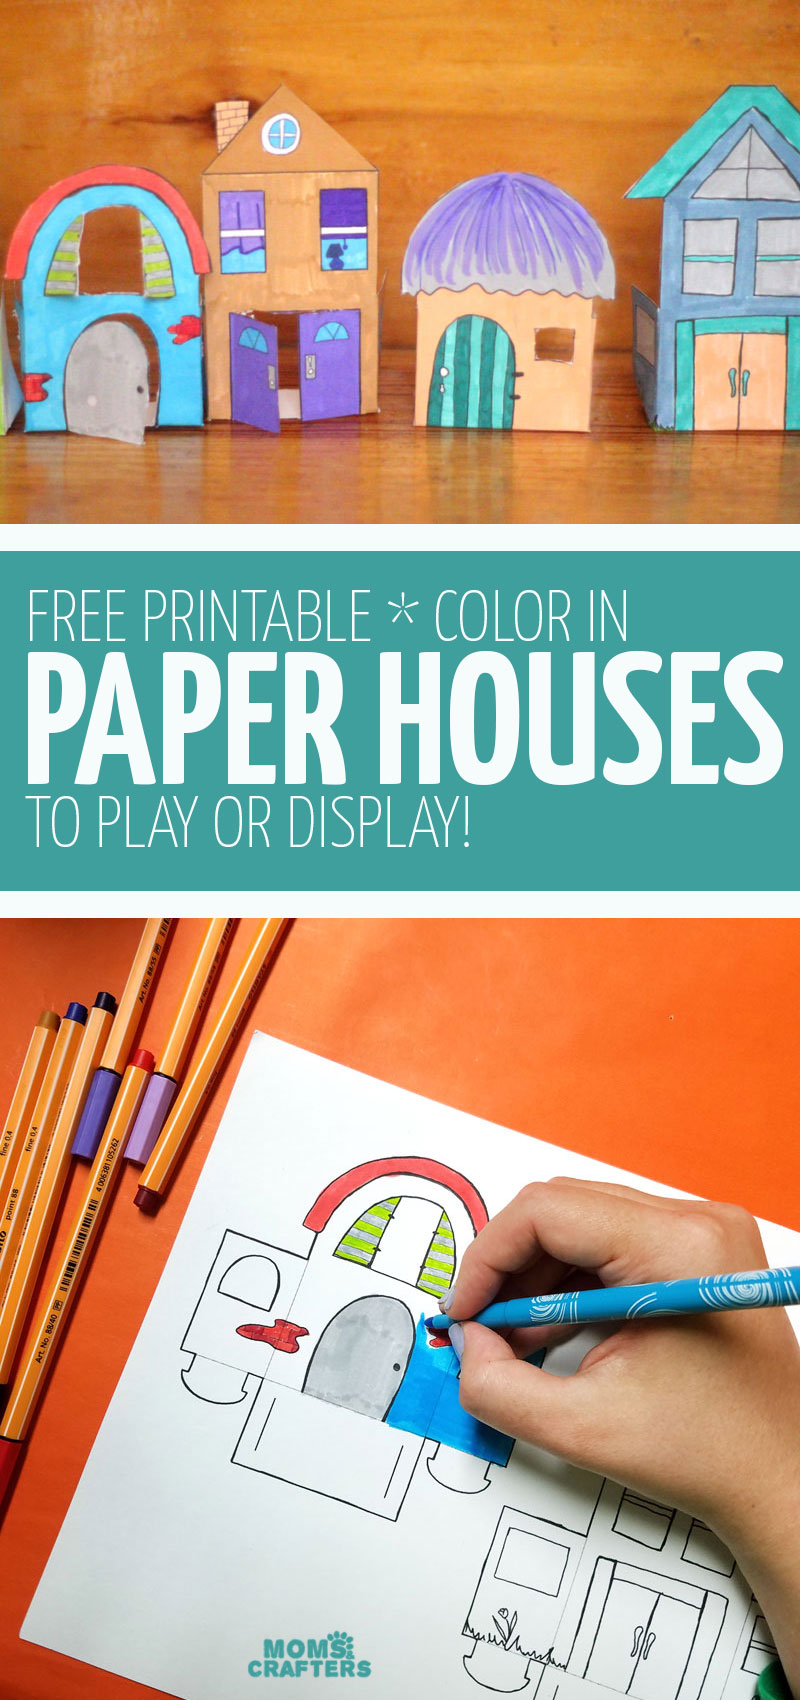 Craft these paper houses - fun free printable coloring pages and paper crafts for kids, teens, tweens, and adults!